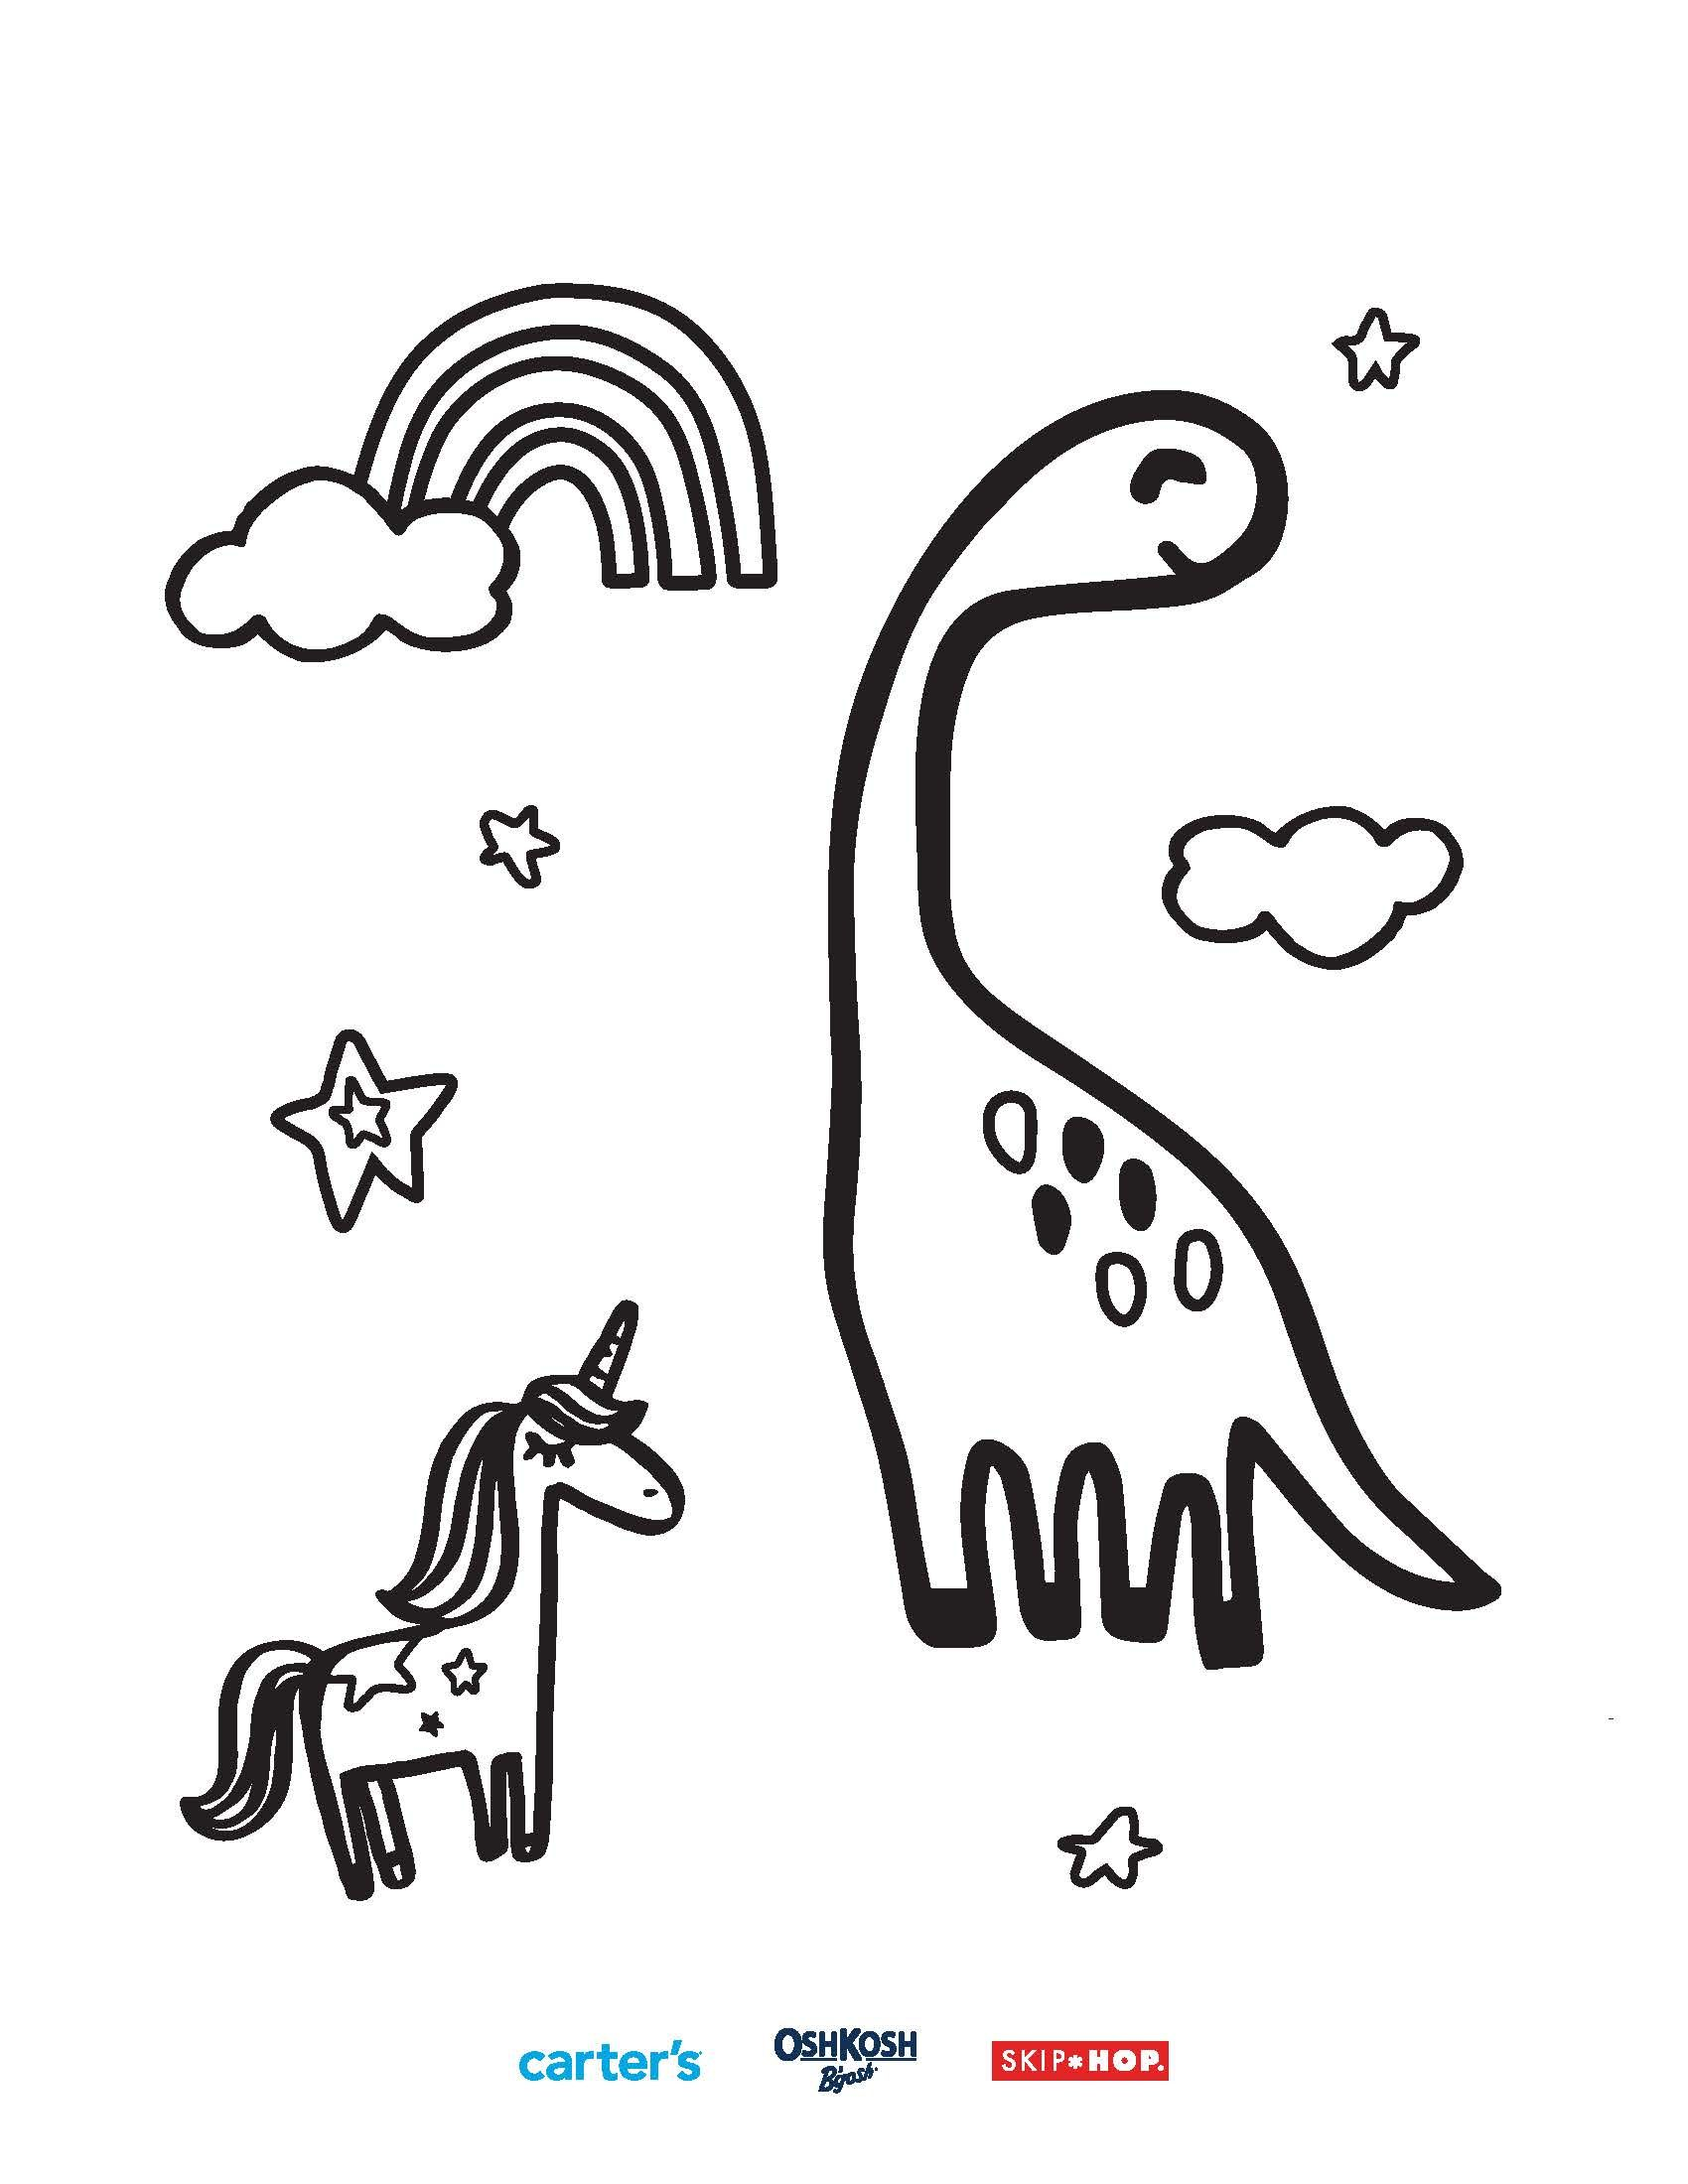 Dinos Unicorns Coloring Sheet In 2020 Kids Coloring Books Free Printable Coloring Pages Coloring Sheets